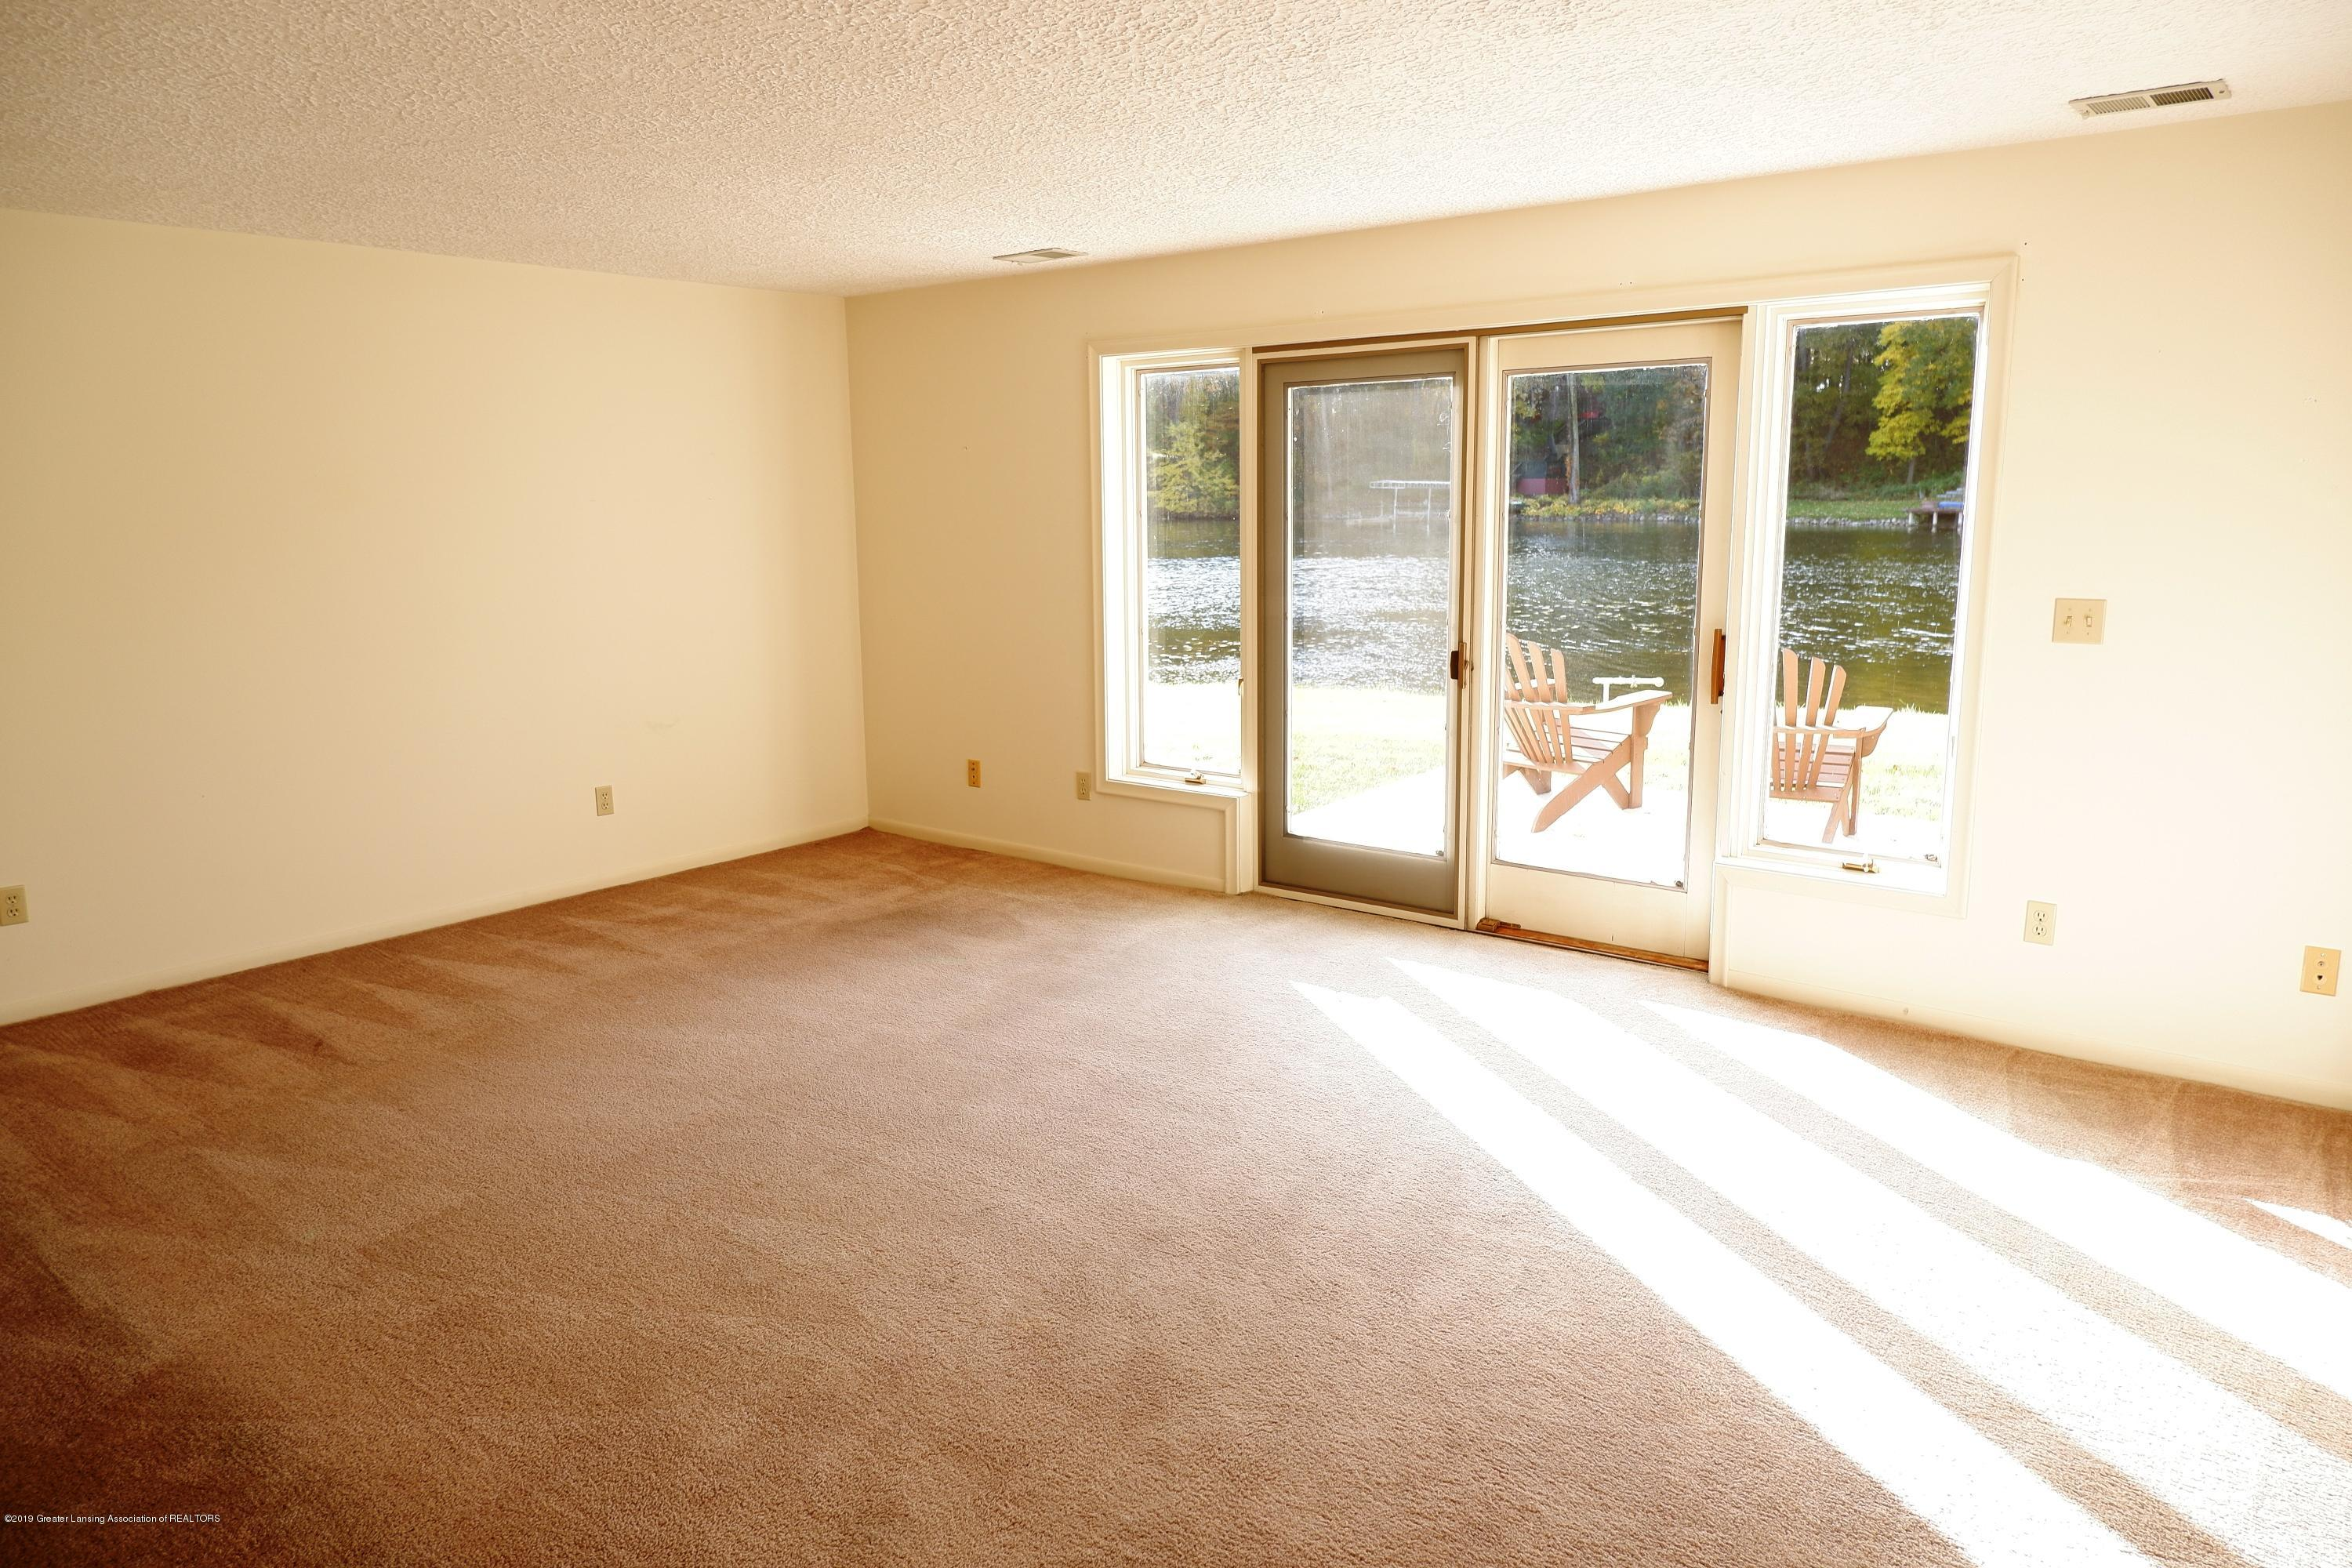 8933 W Scenic Lake Dr - Lower level family room - 32